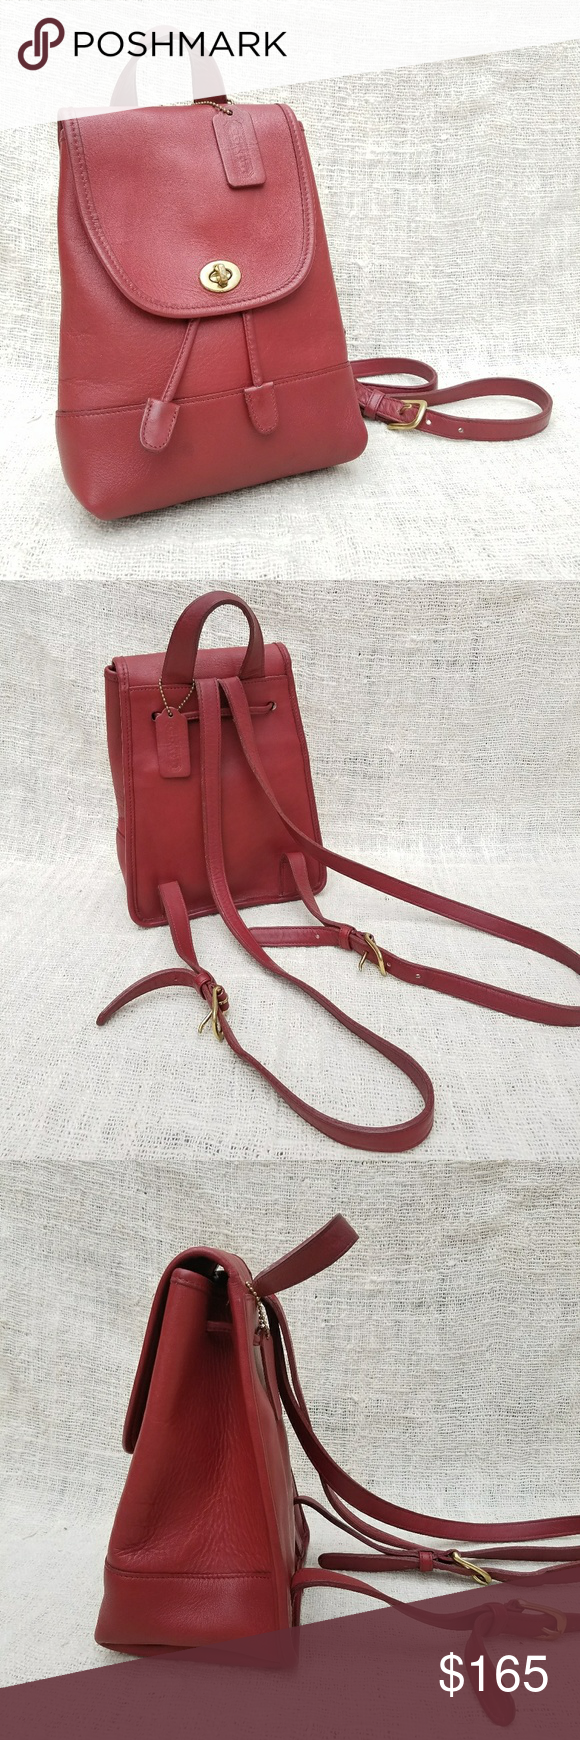 5db46975ded40 Vintage Coach Red Leather Mini Backpack Daypack Beautiful vintage Coach red  leather back pack! Brass